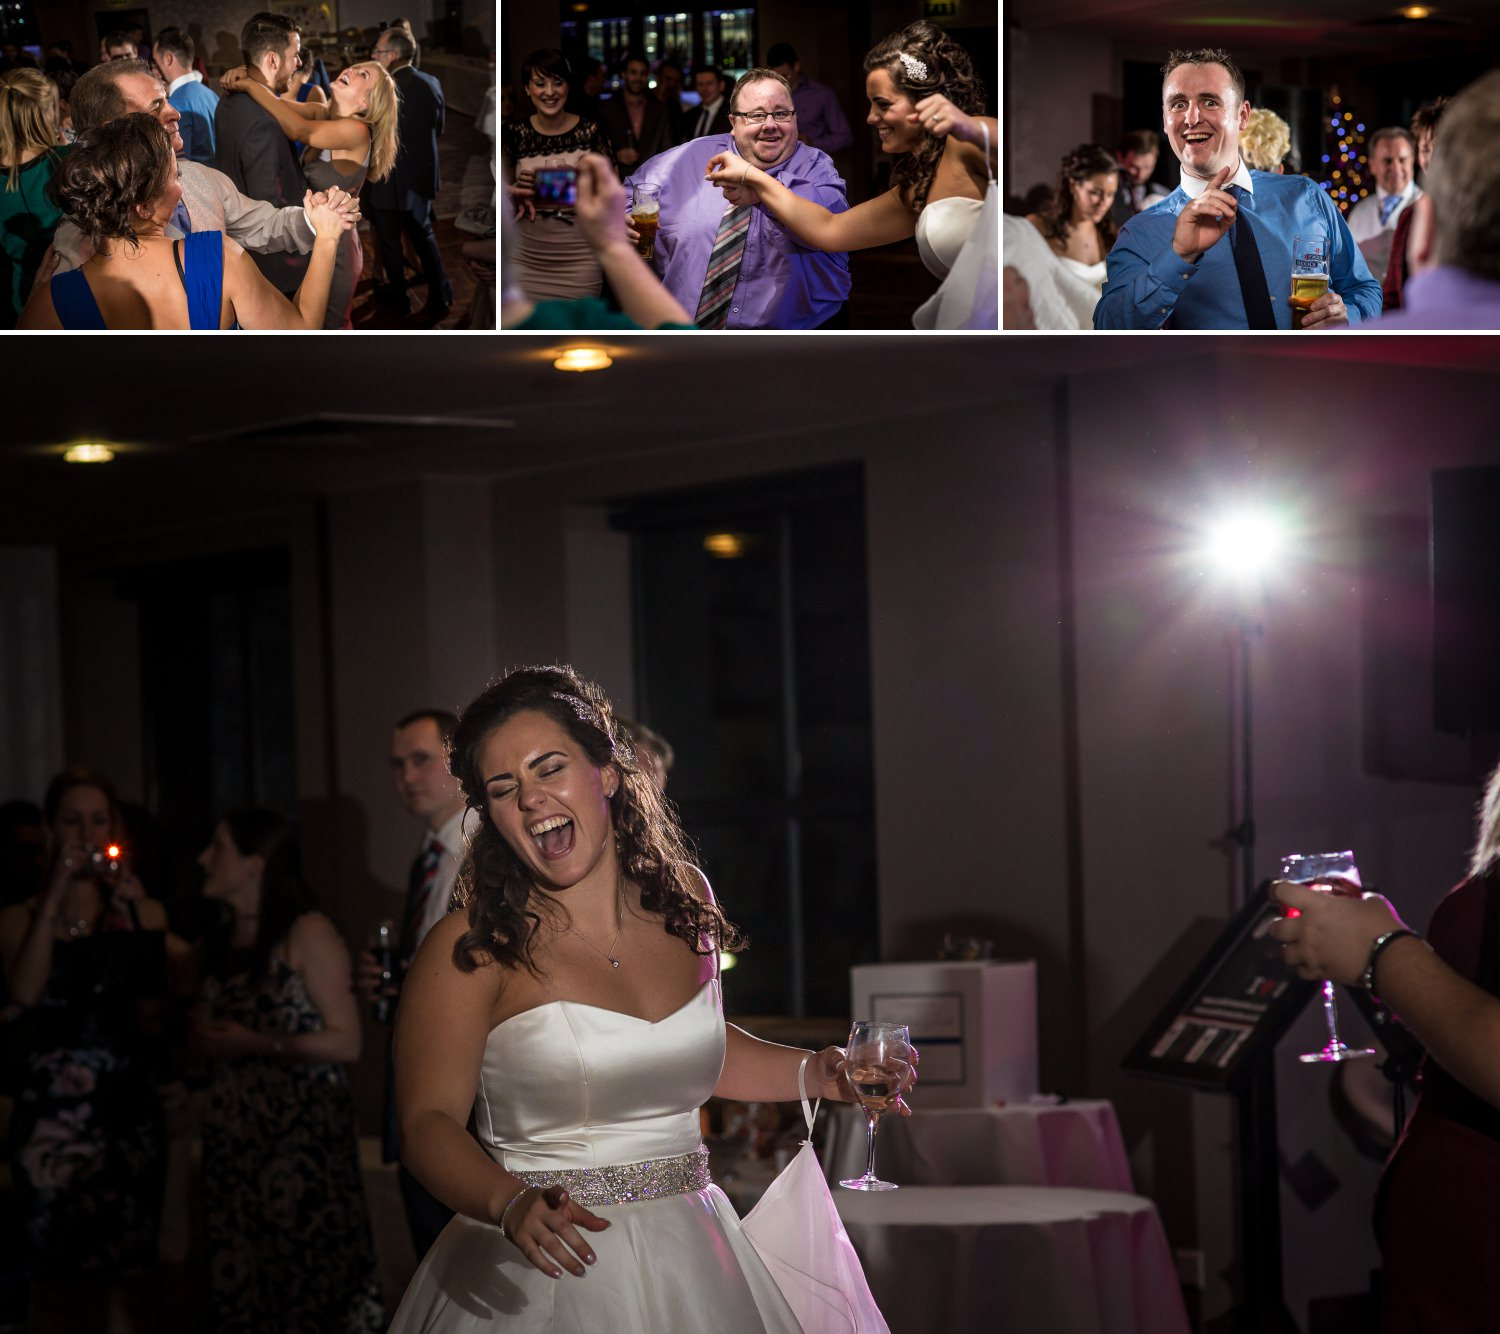 Guests dancing at the Quay hotel north wales, being professionally photographed